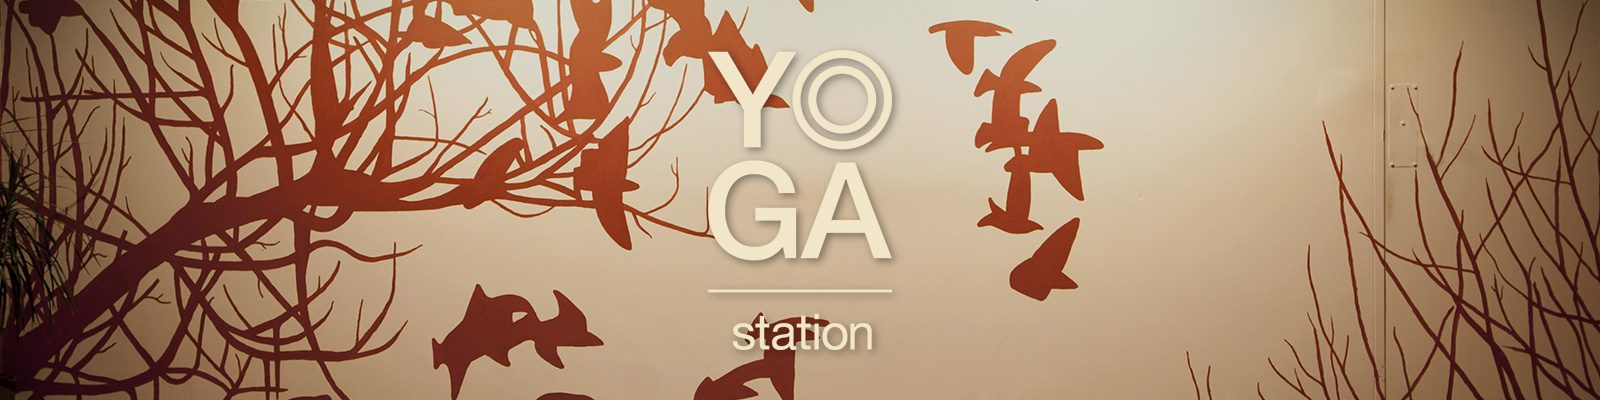 yoga-station-home-wall